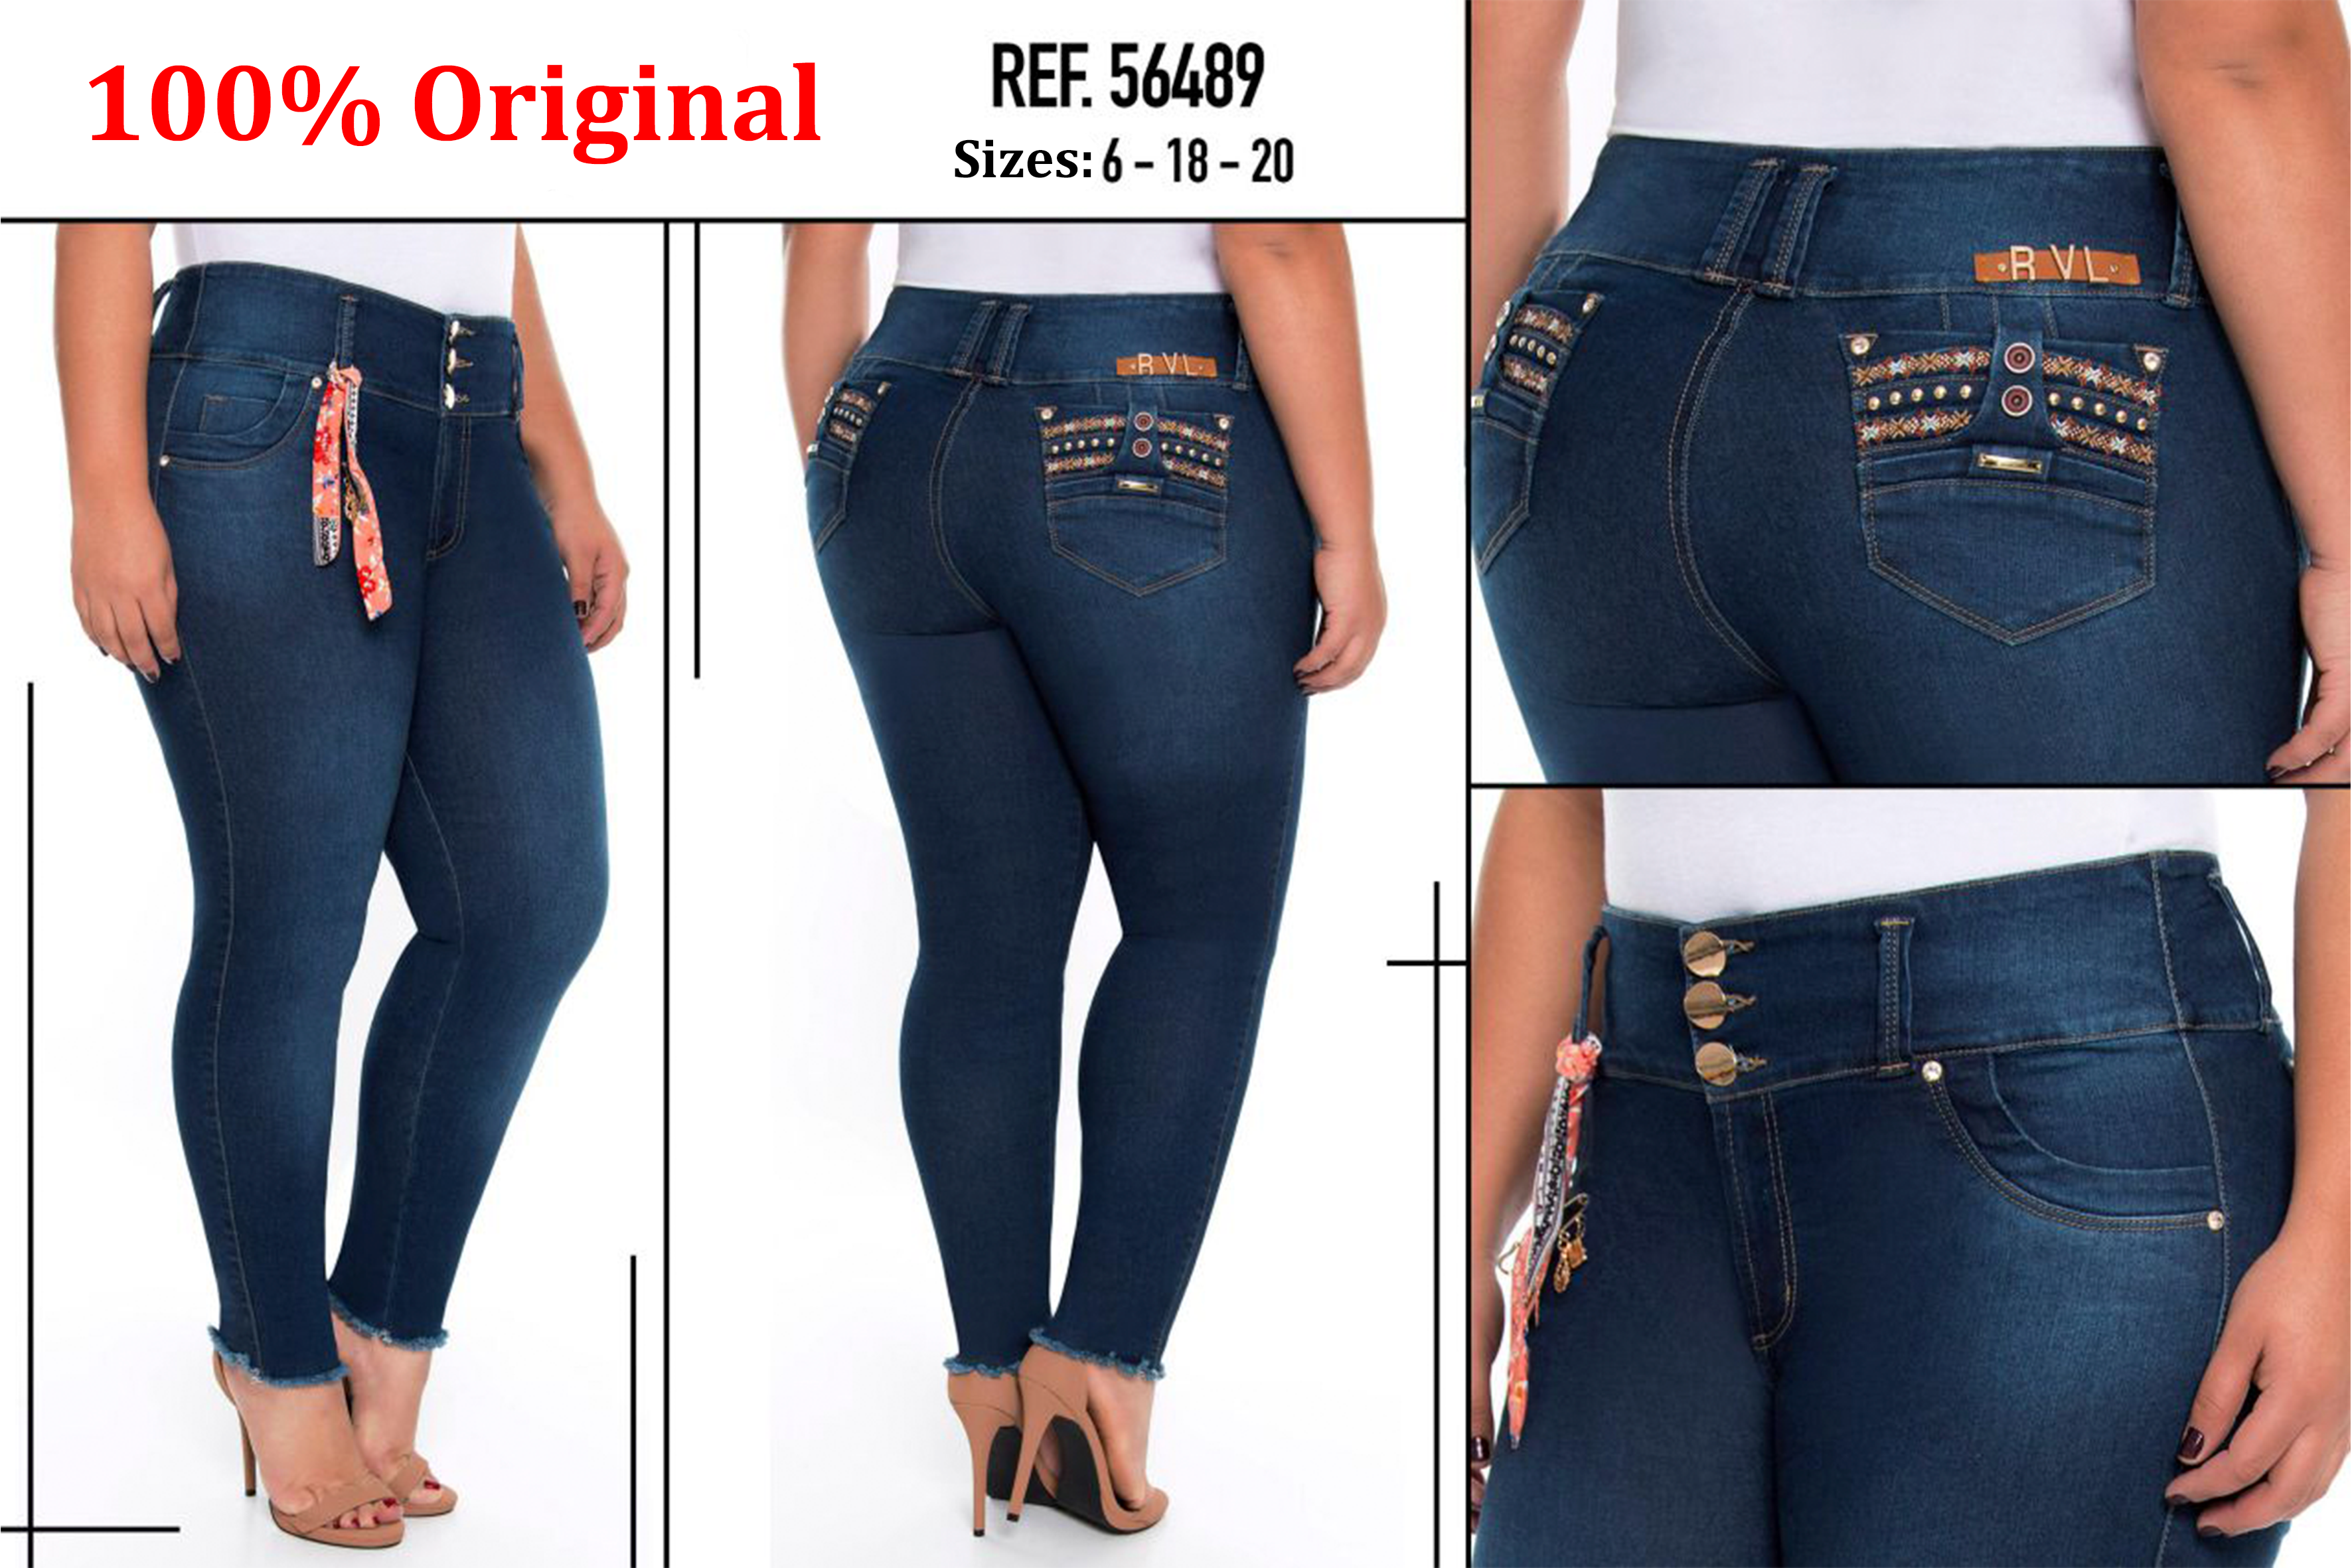 Mid/high Waisted Butt Lifting Jeans Ref: 56489